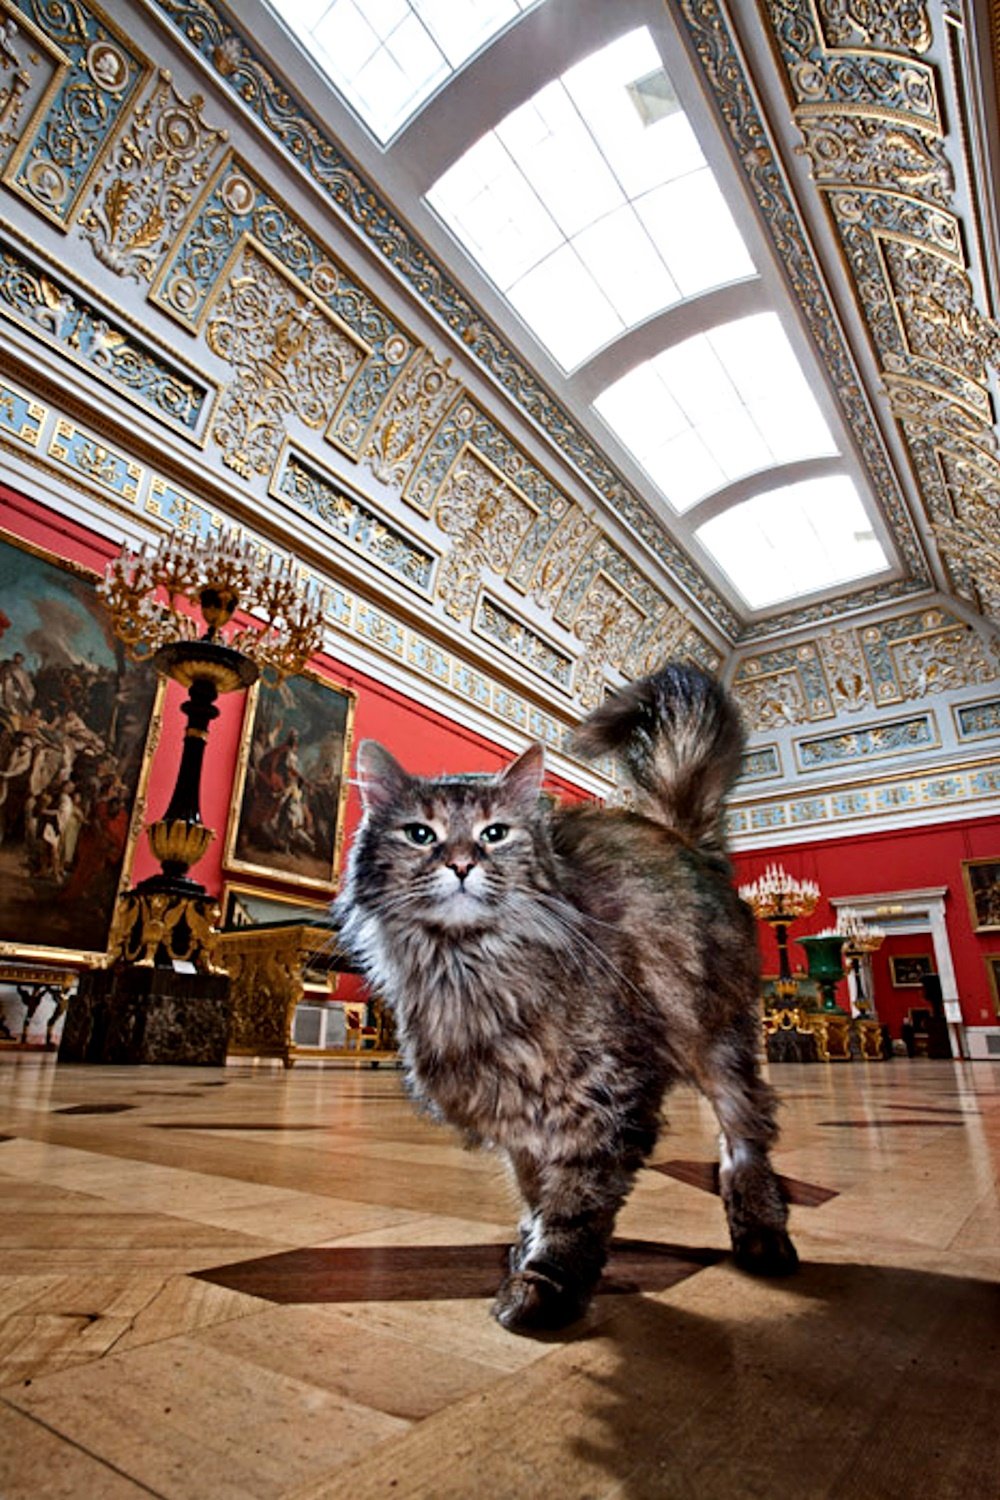 00 hermitage cats. russia. st petersburg. 10. 25.10.14